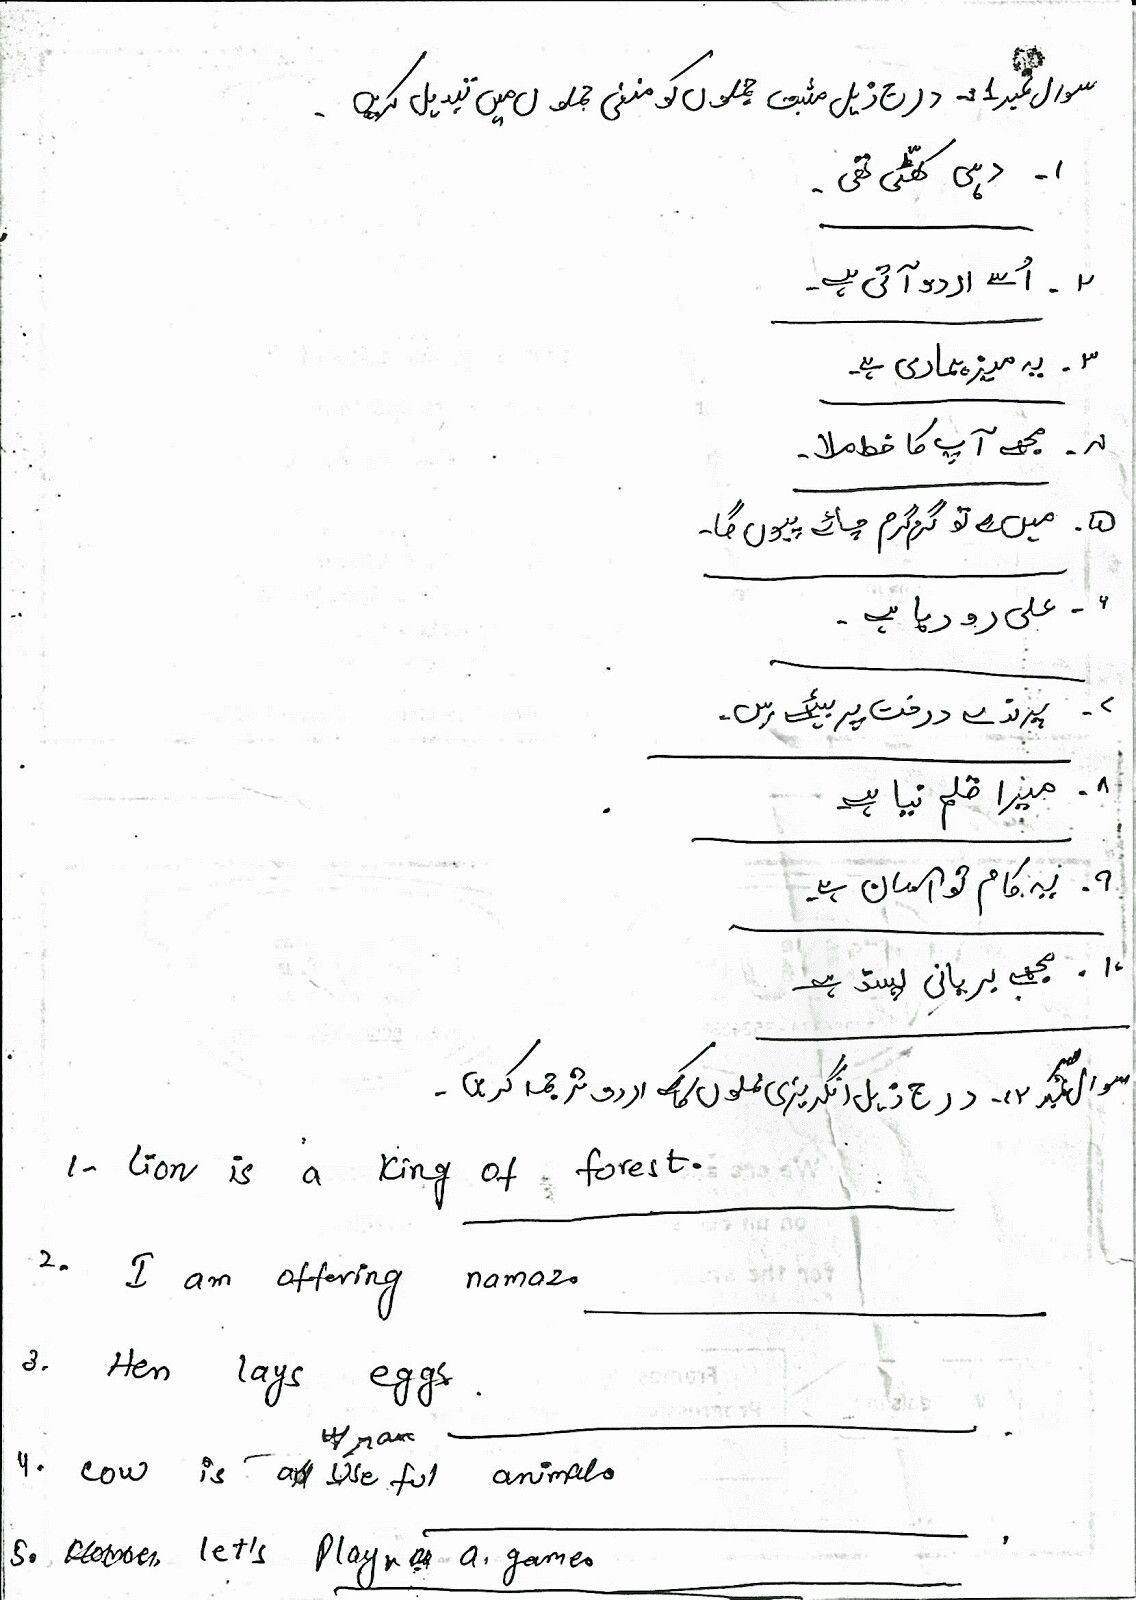 hight resolution of Pin by anam jumlana on Urdu worksheets   Reading comprehension worksheets